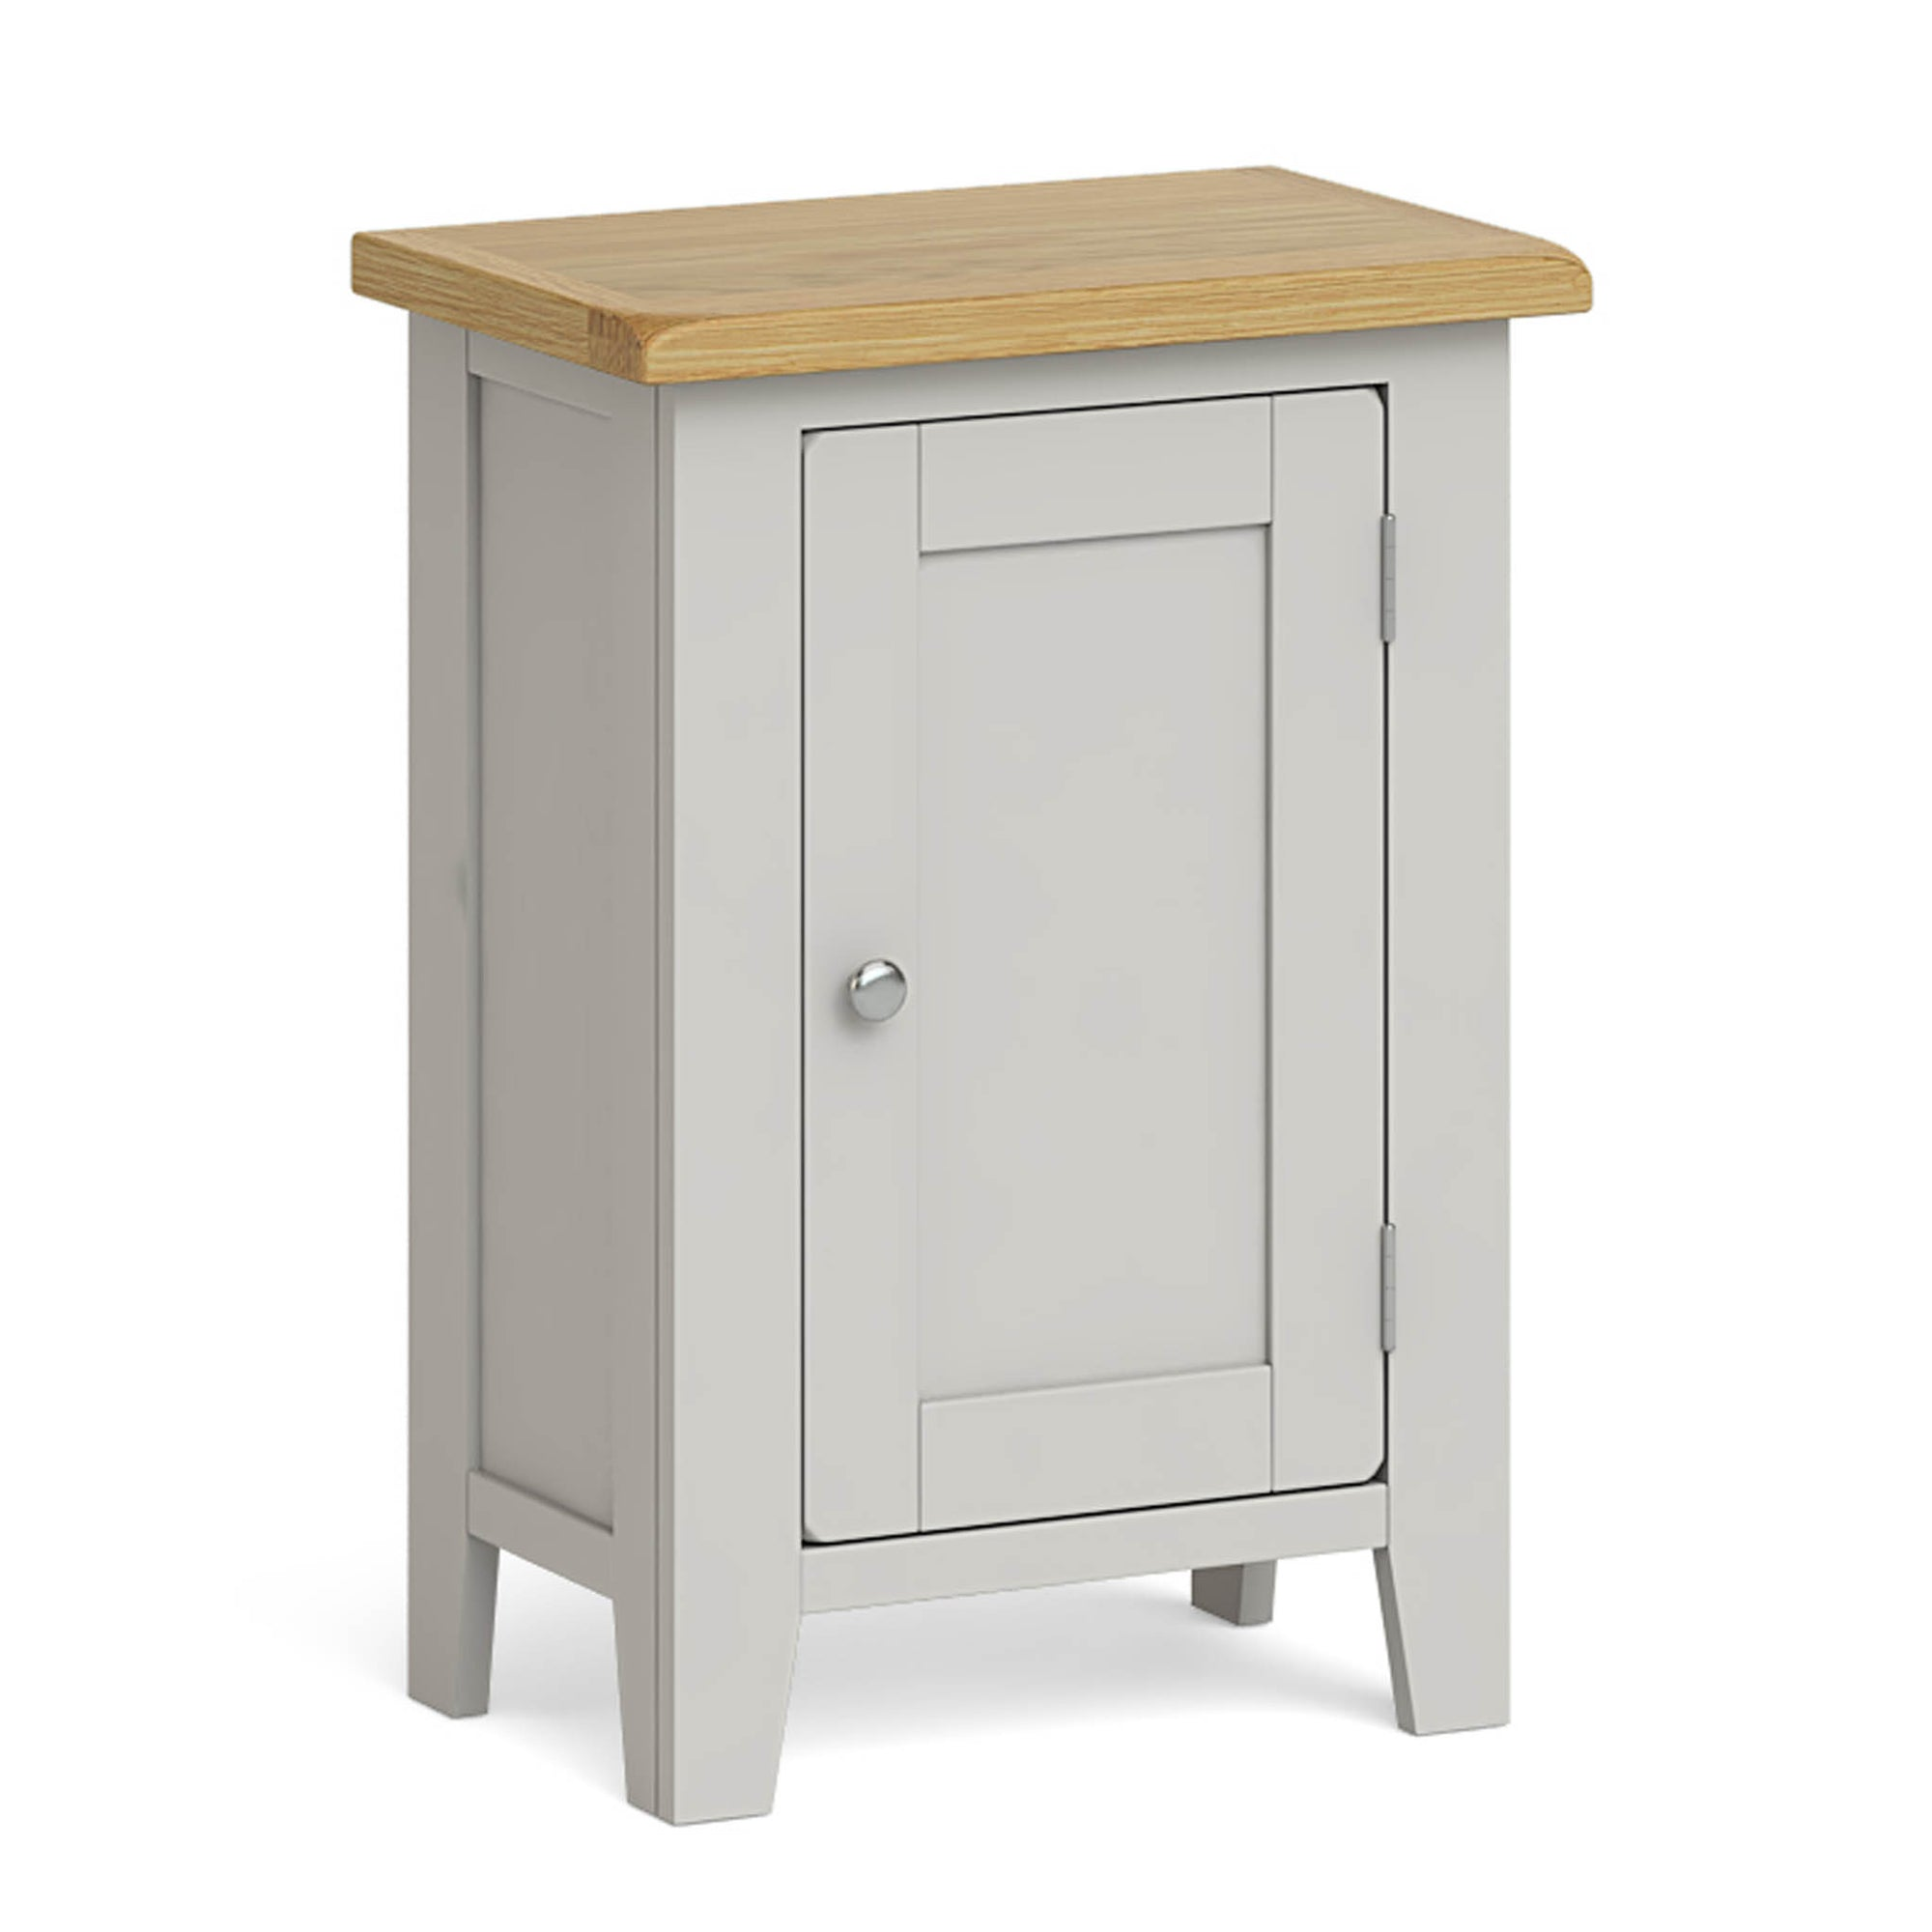 Lundy Grey Single Cabinet by Roseland Furniture